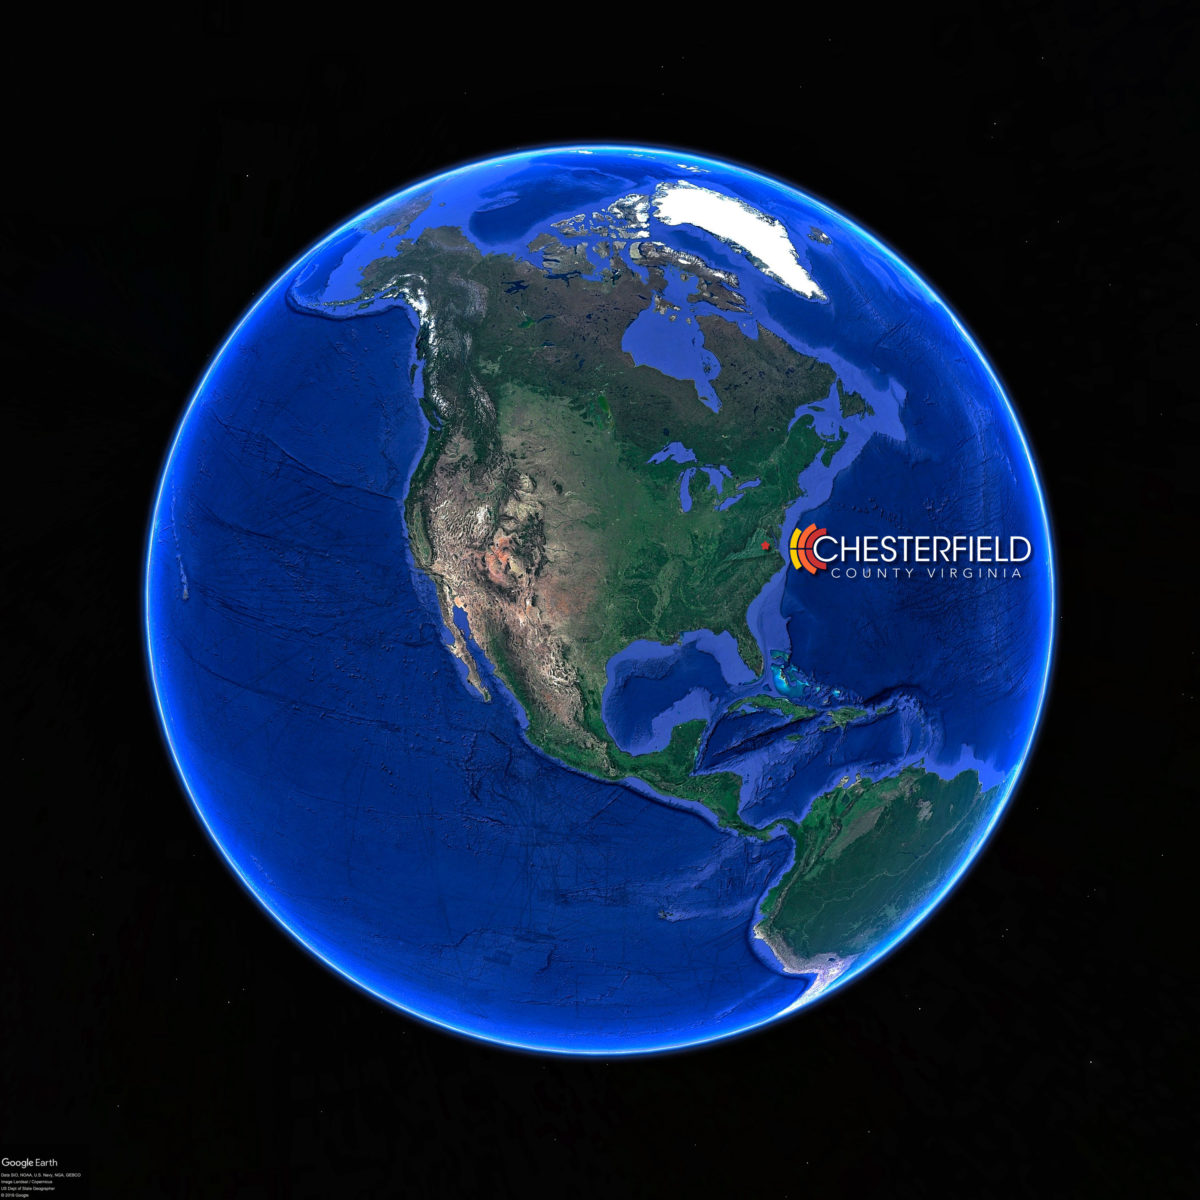 Chesterfield Location Earth